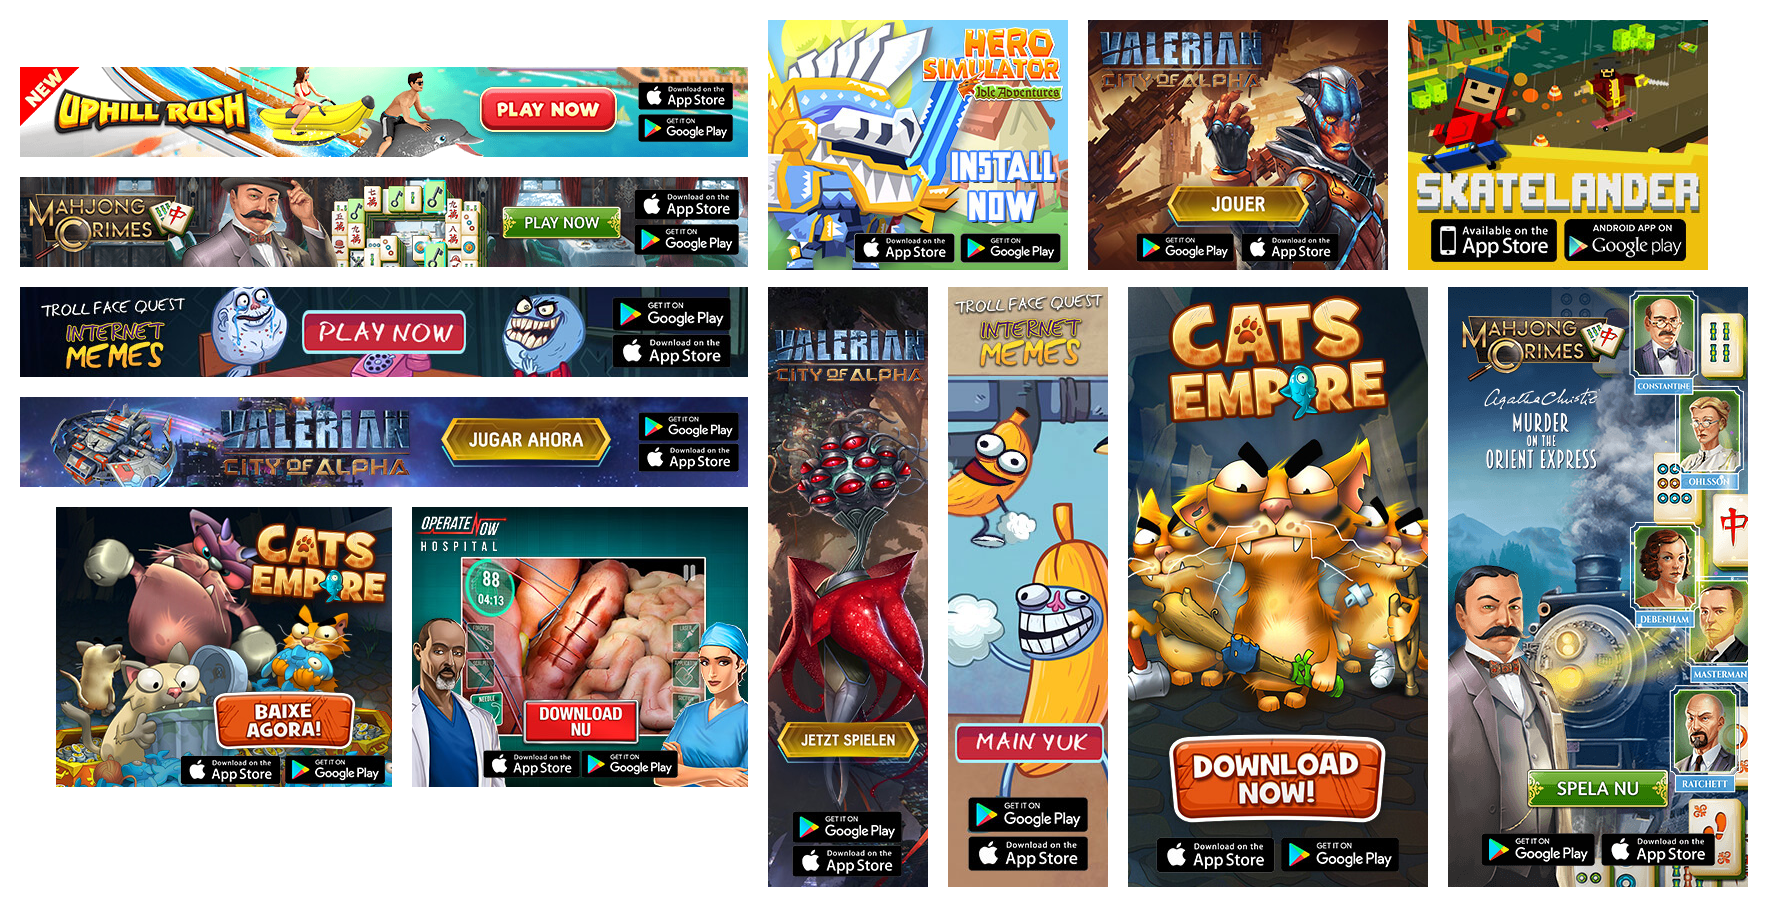 Mobile Apps Advertising Promotion Collage